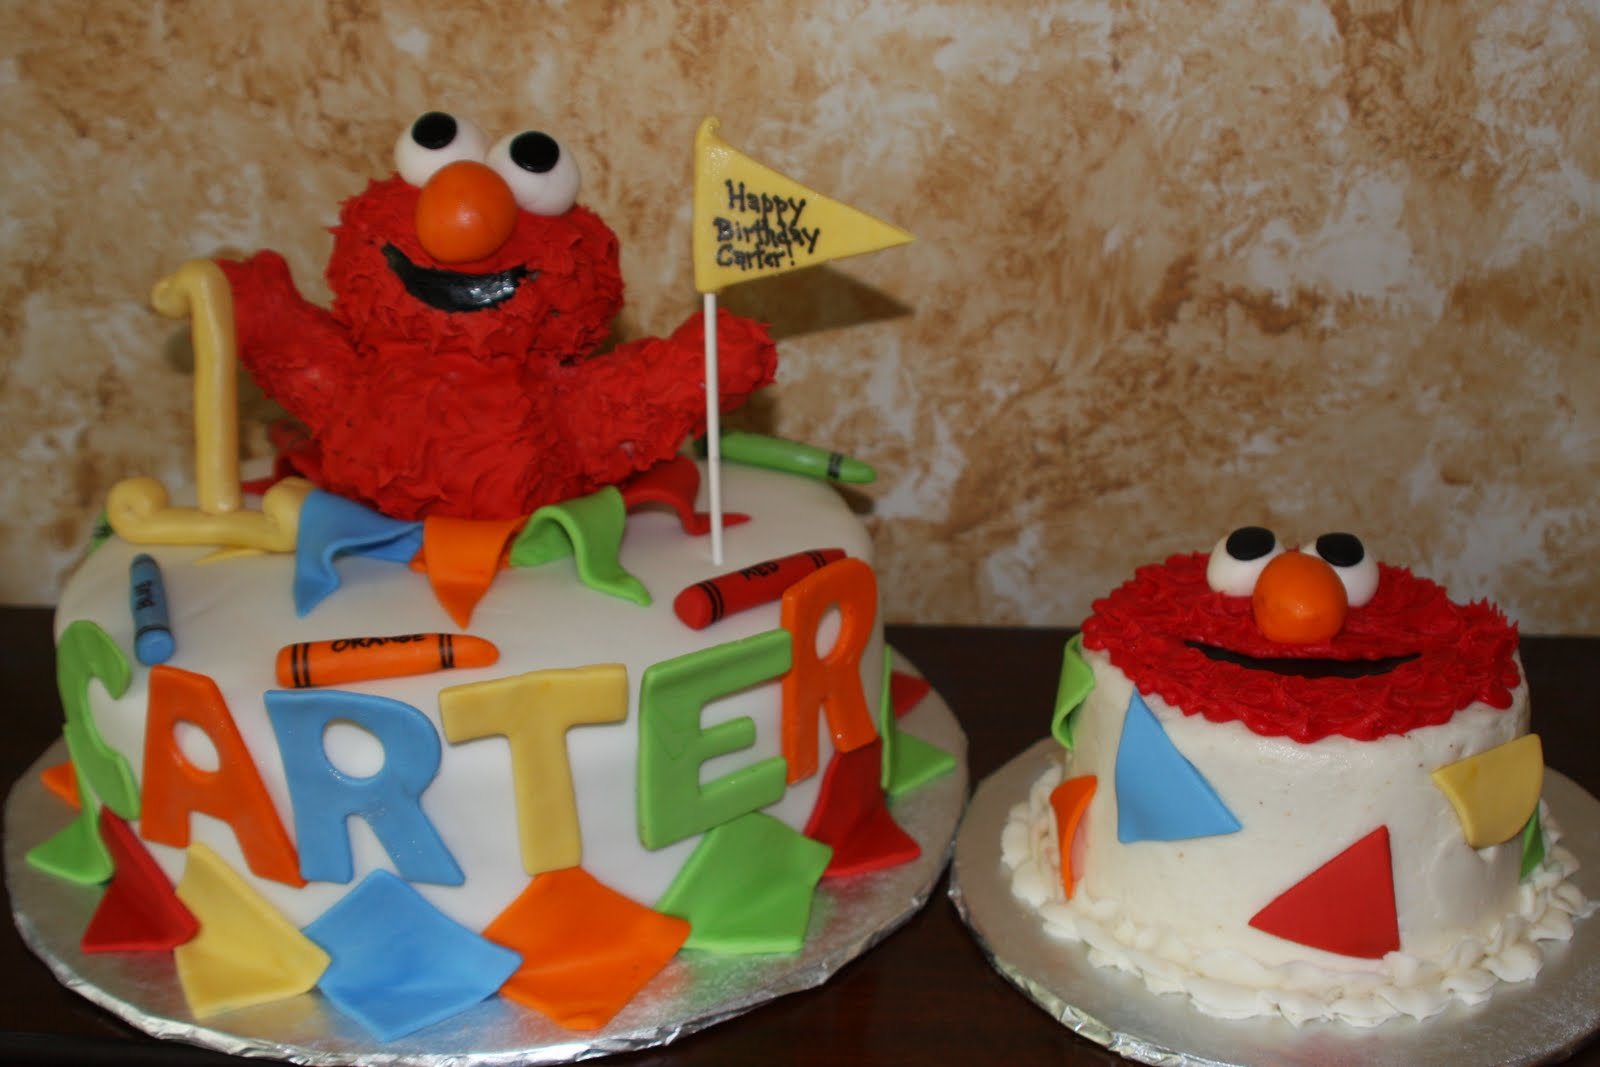 Kels Cake Creations Elmo 1st Birthday Cake and Smash Cake